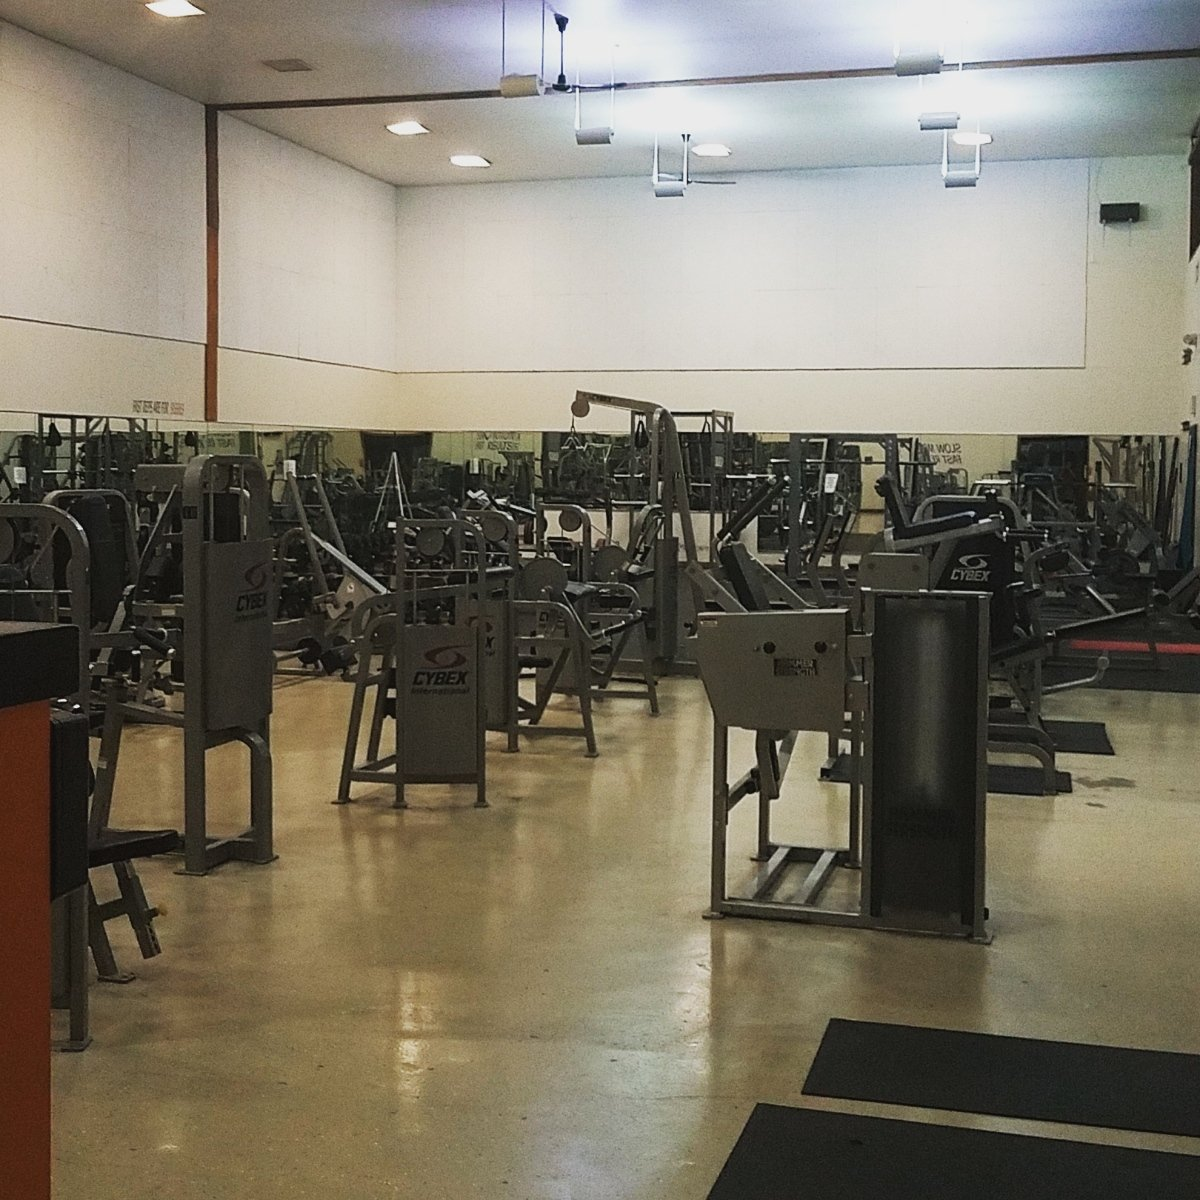 Weight Machines at ColumbusFit gym in Columbus Indiana